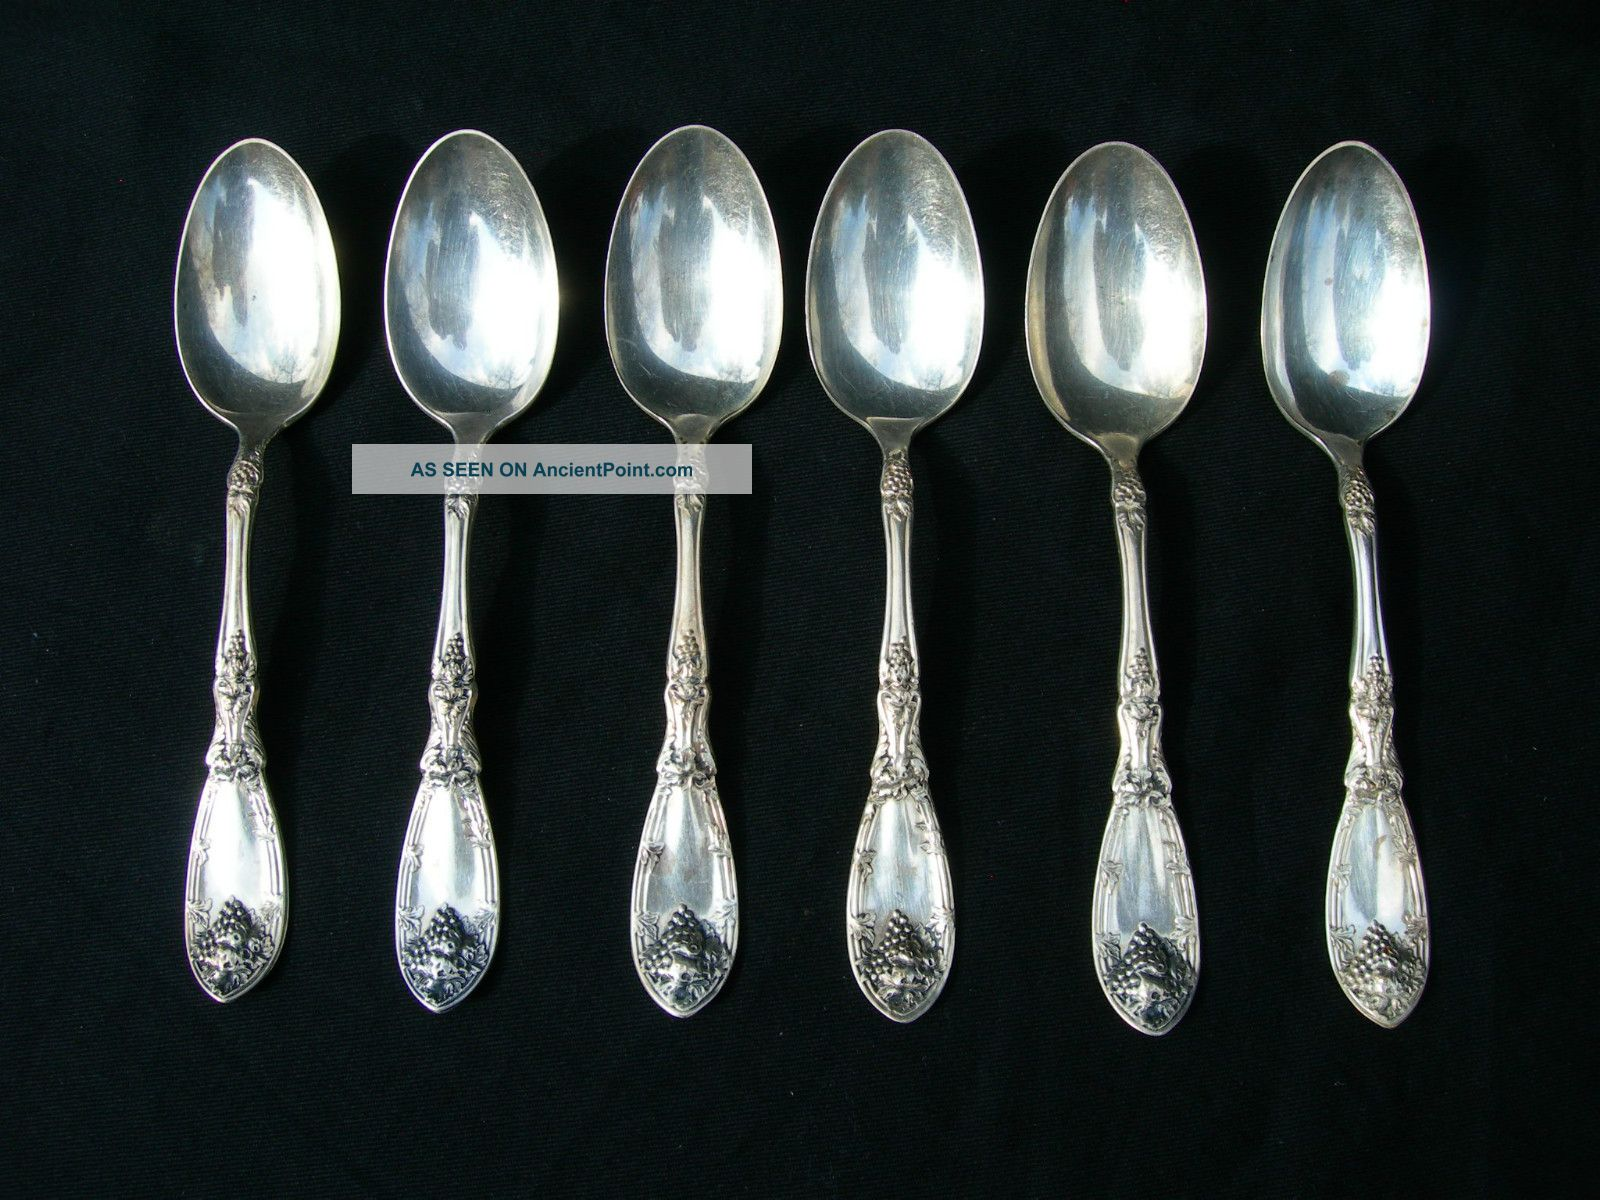 6 Rogers 1881 A1 Silver Plated Spoons.  Condition Oneida/Wm. A. Rogers photo